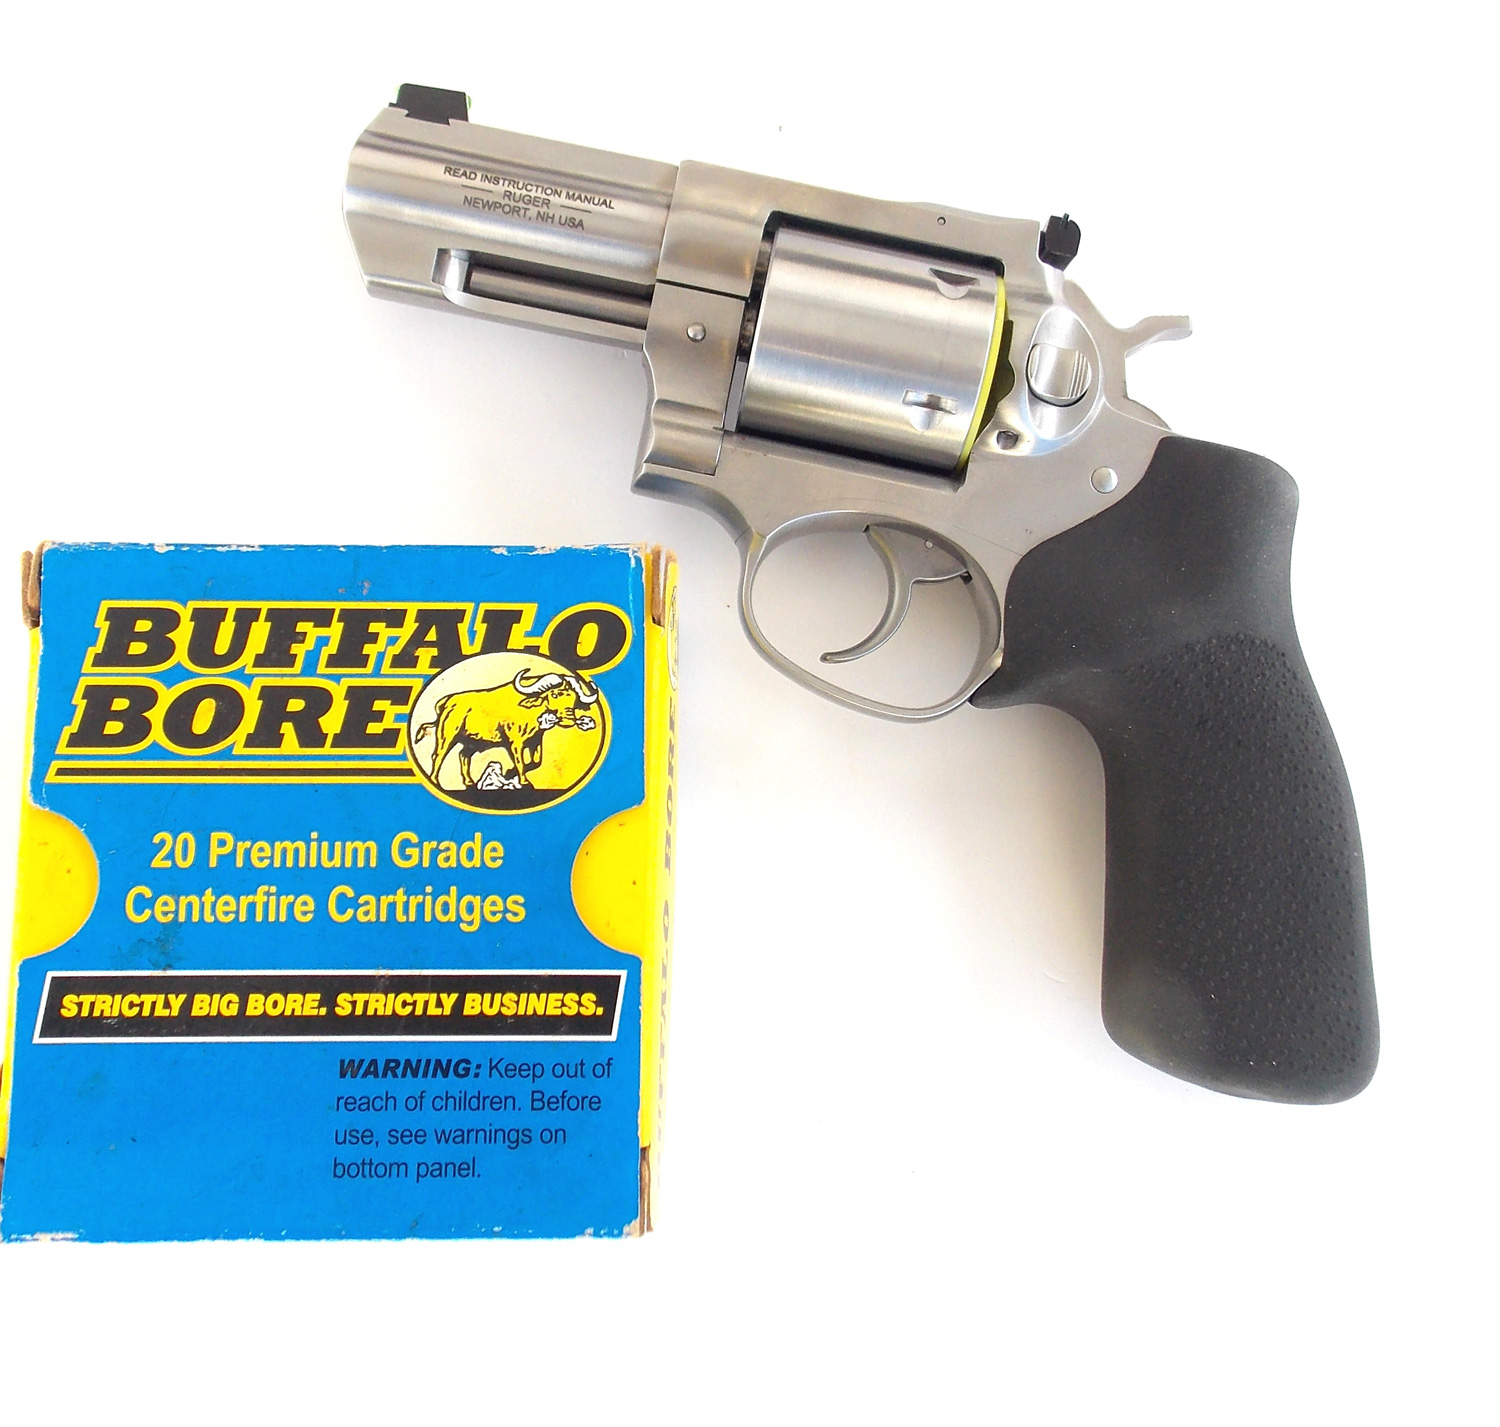 Ruger GP100 revolver with box of Buffalo Bore ammuniton